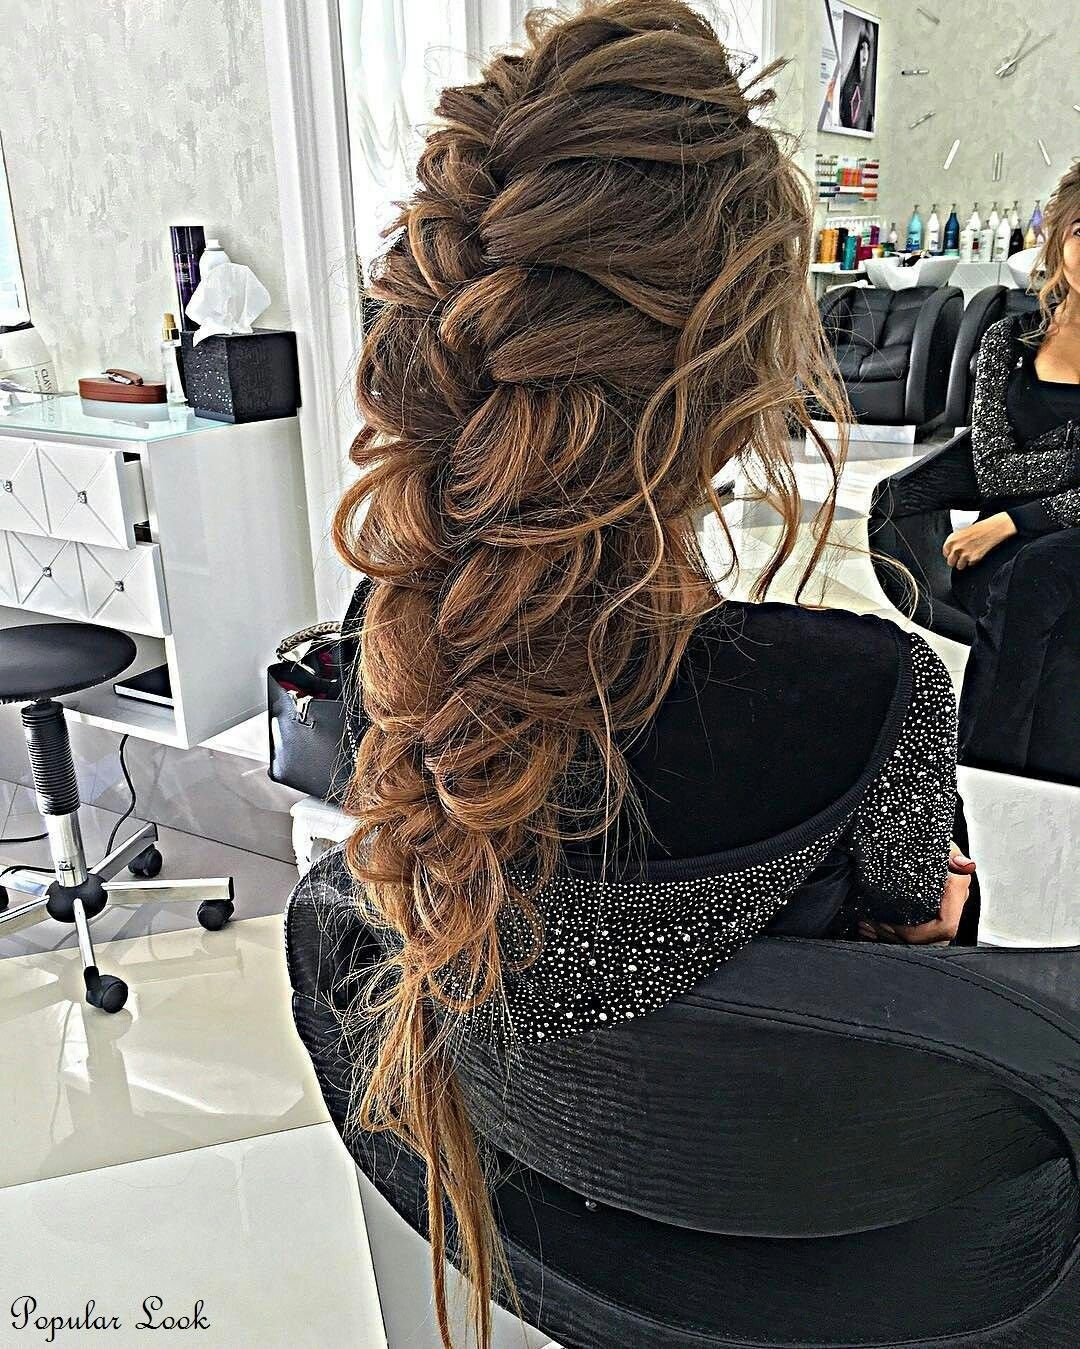 Wedding Hairstyles For Long Hair With Braids: Don't Know What To Do With Your Hair: Check Out This